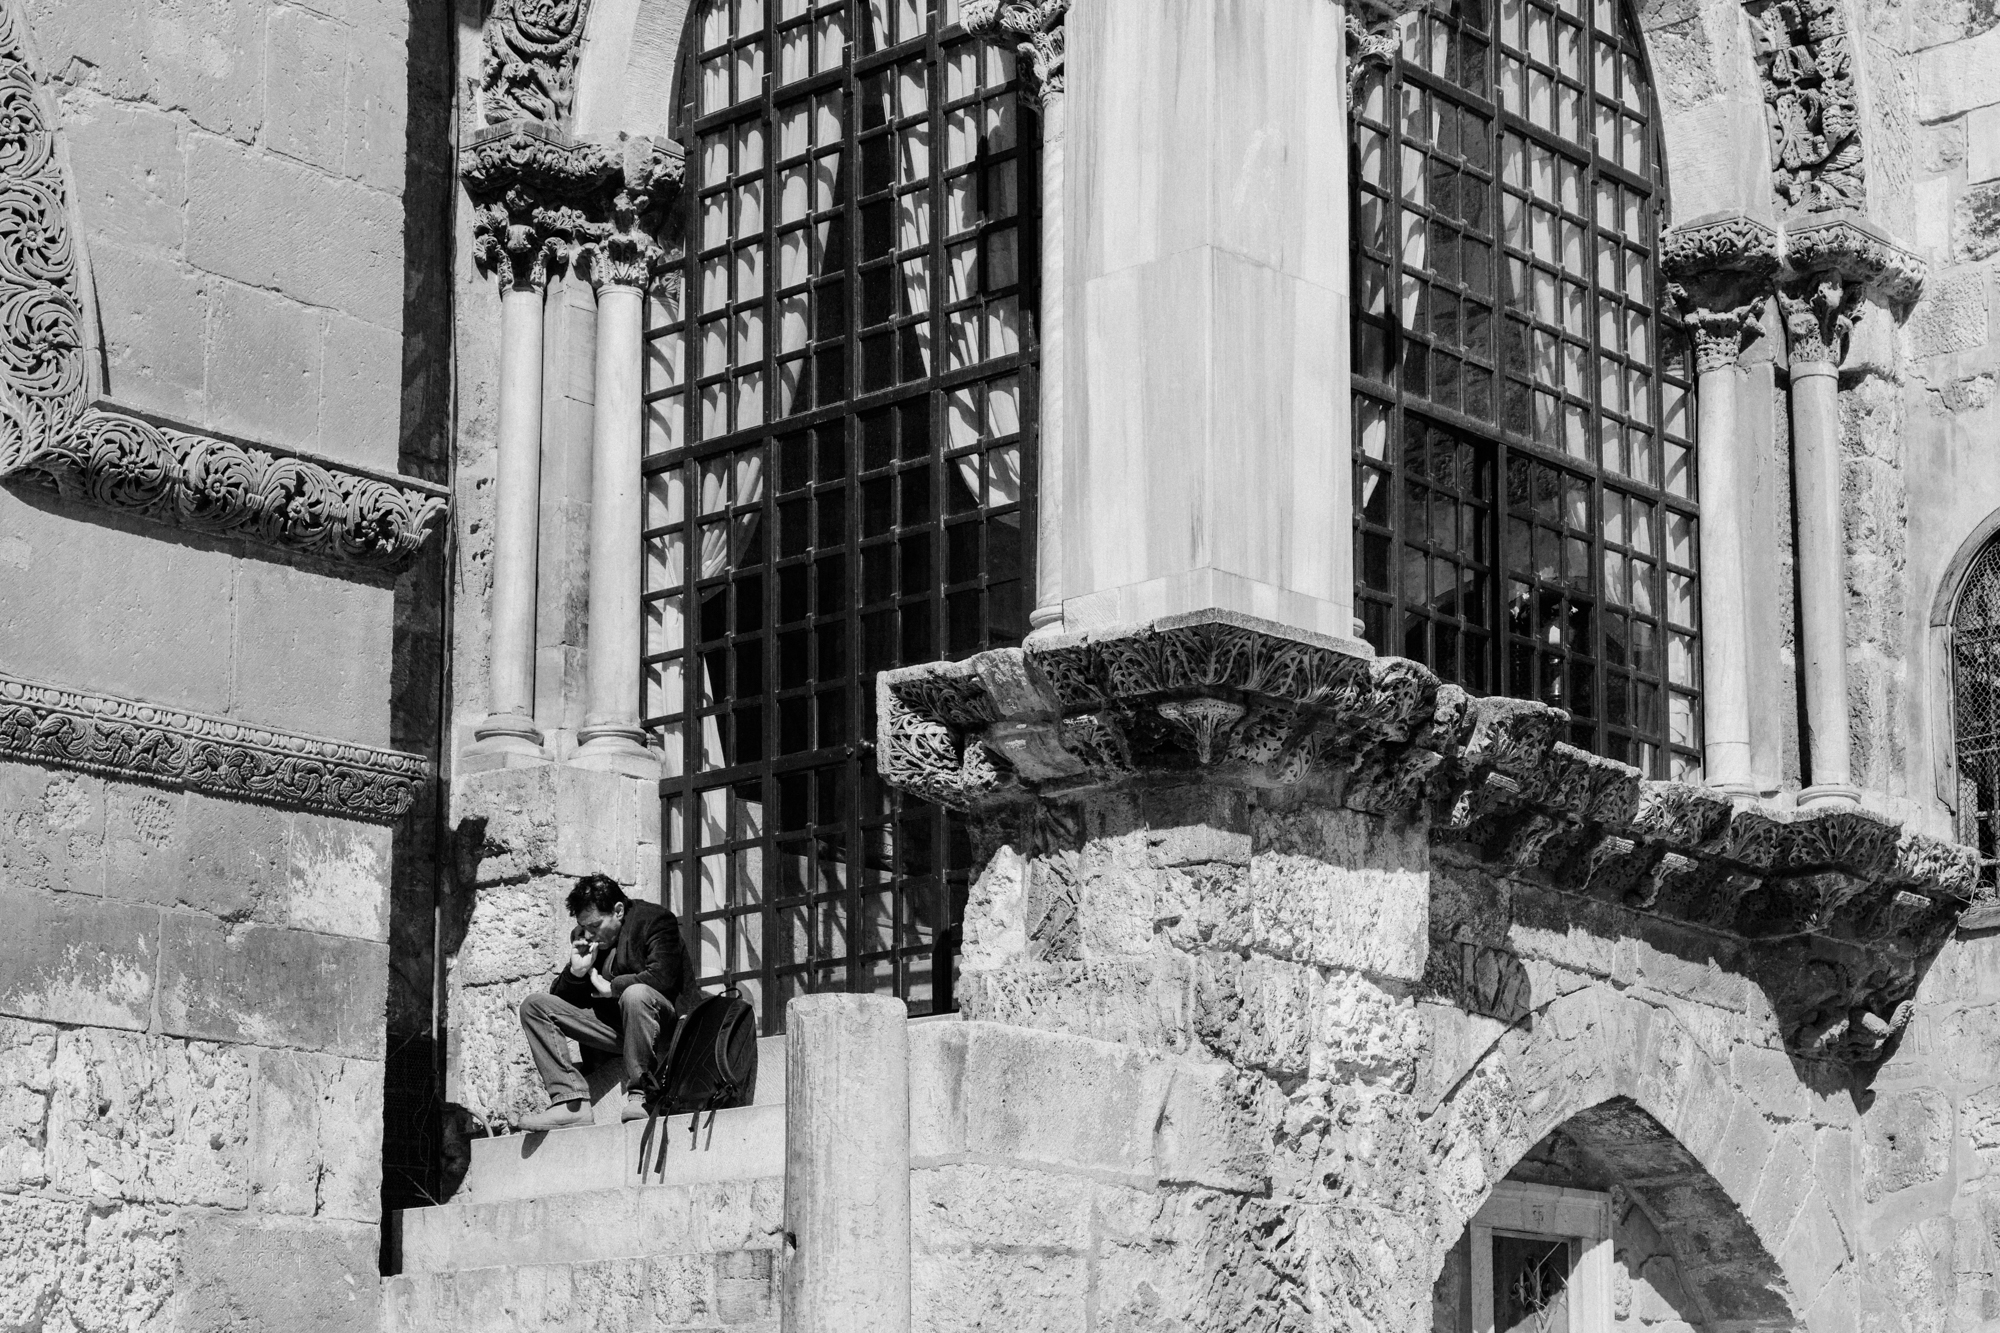 church of the holy sepulchre, jerusalem, israel.   israel collective